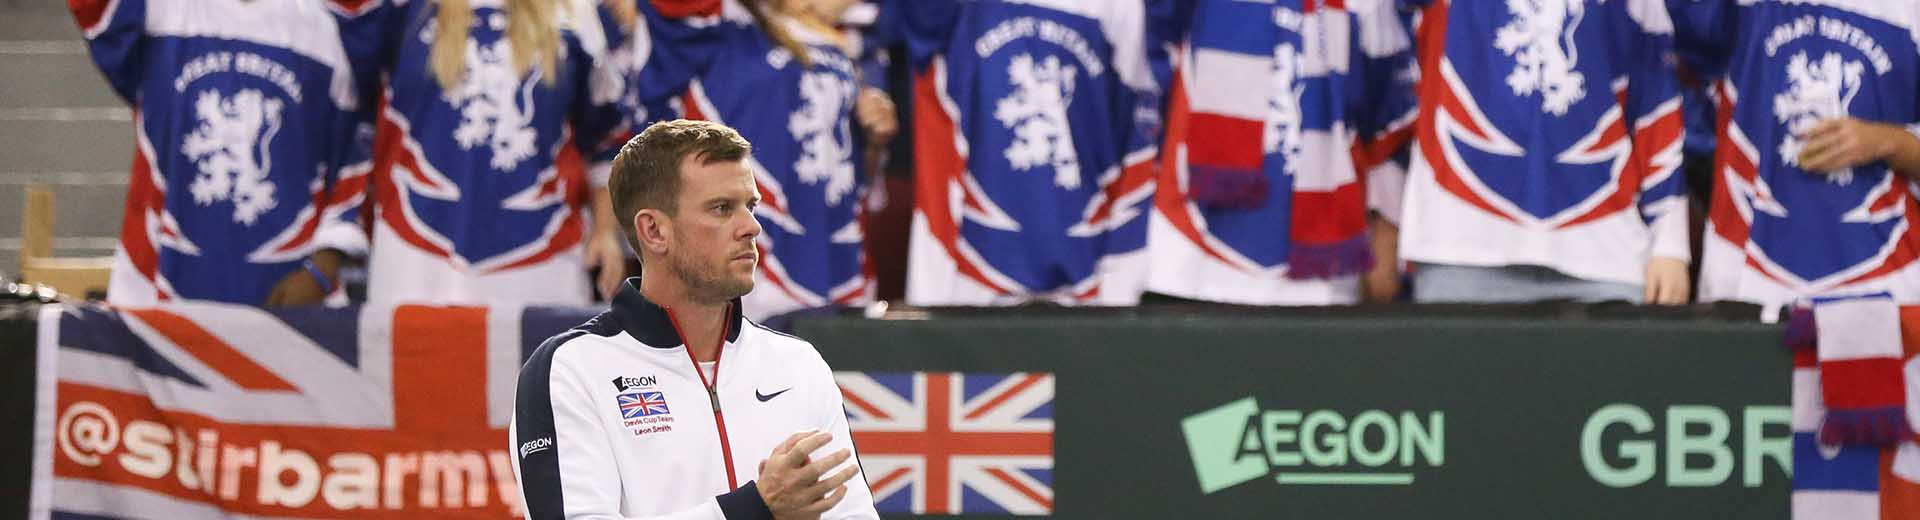 Aegon GB Davis Cup Team to face France on clay